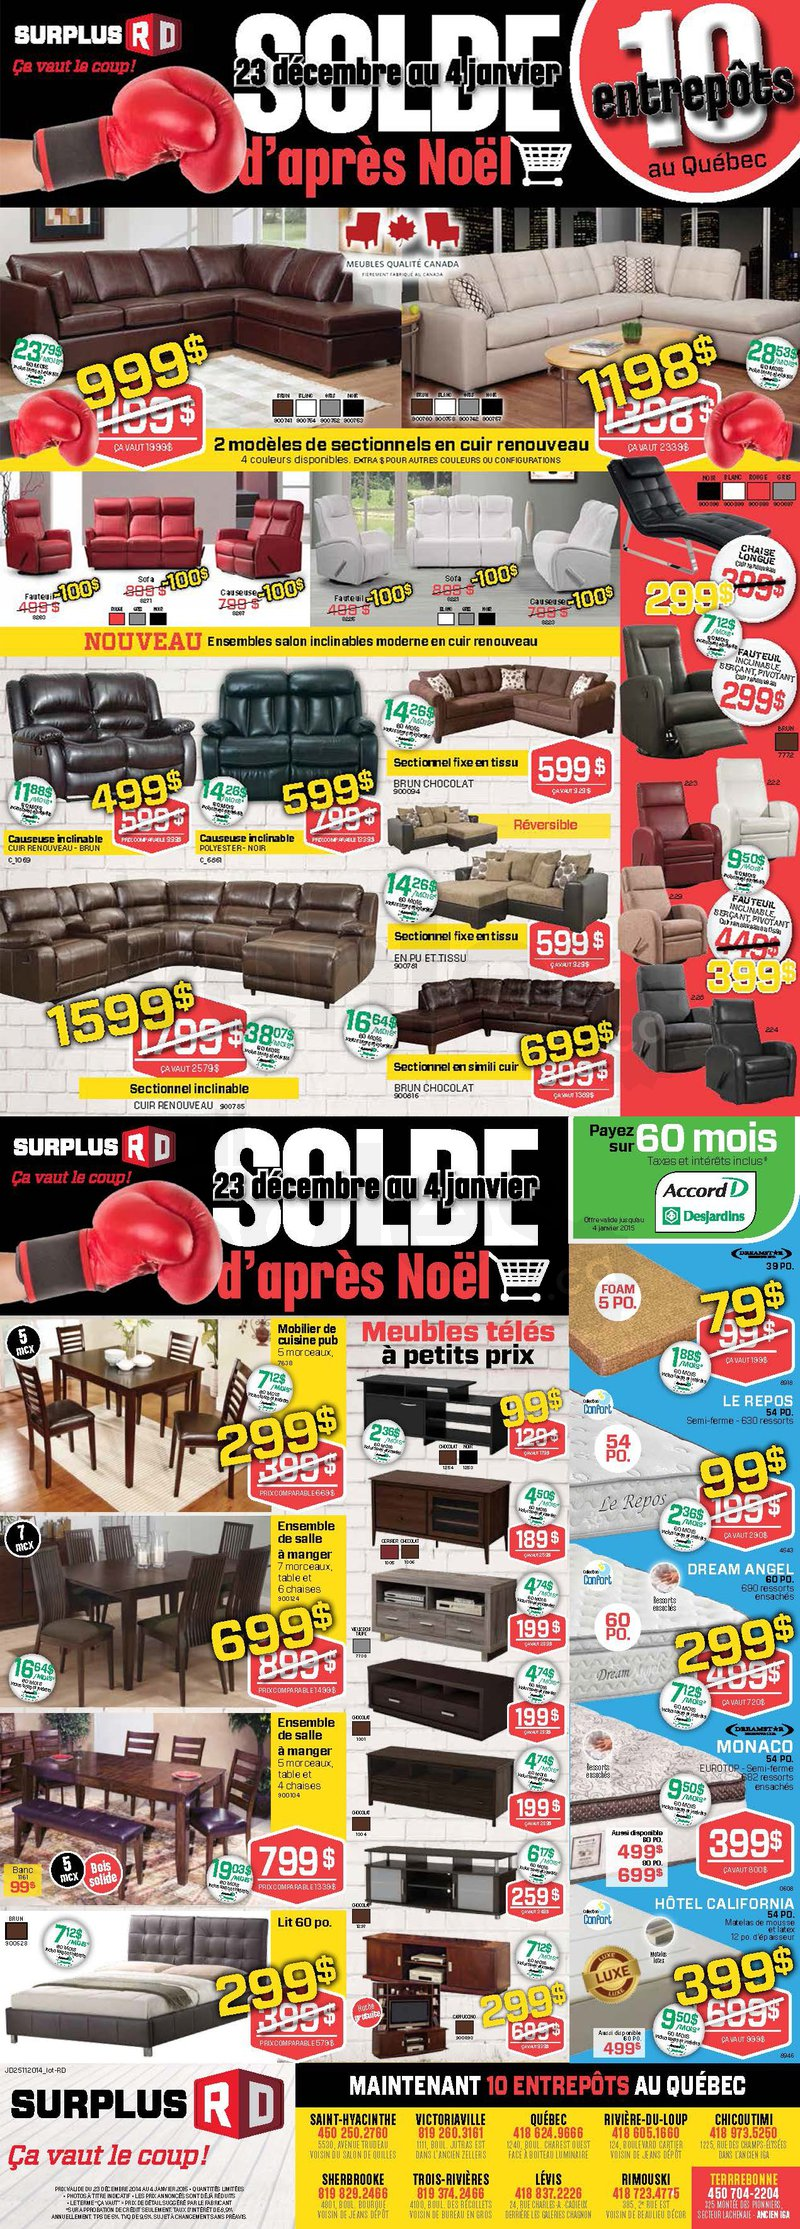 Meubles soldes d 39 apr s no l for Liquidation meuble sherbrooke